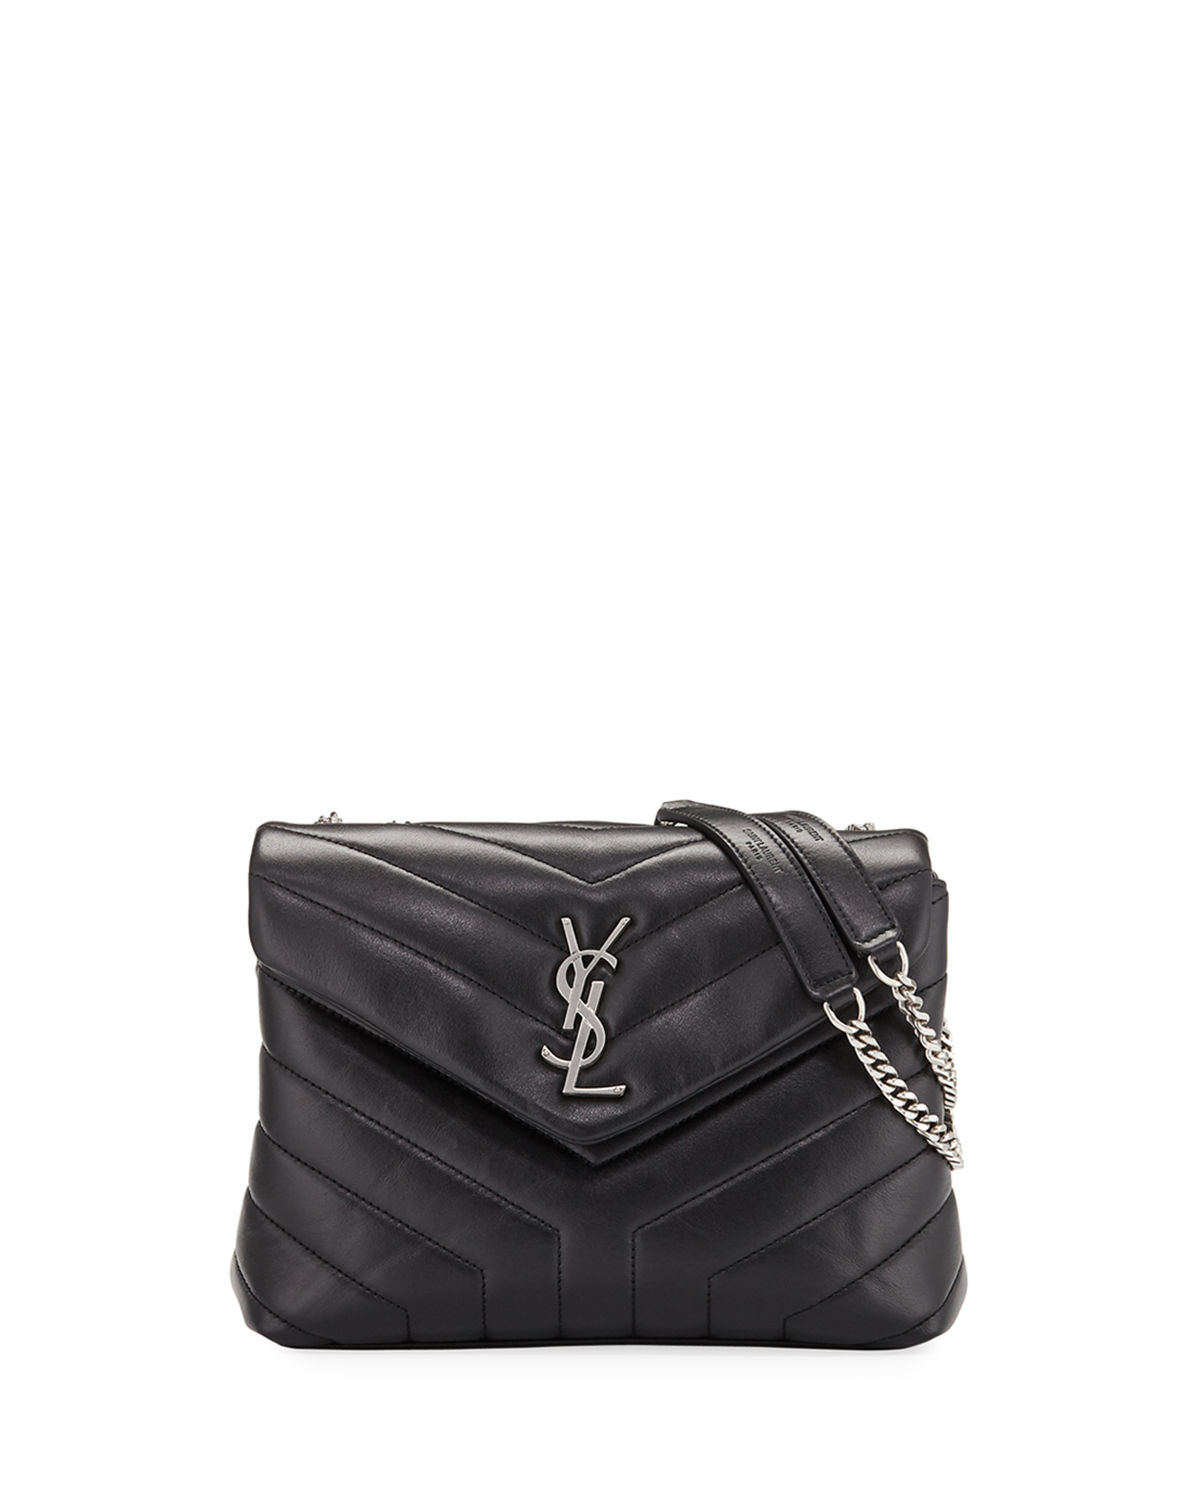 Saint Laurent Loulou Monogram YSL Small Chain Bag   Neiman Marcus f752194767